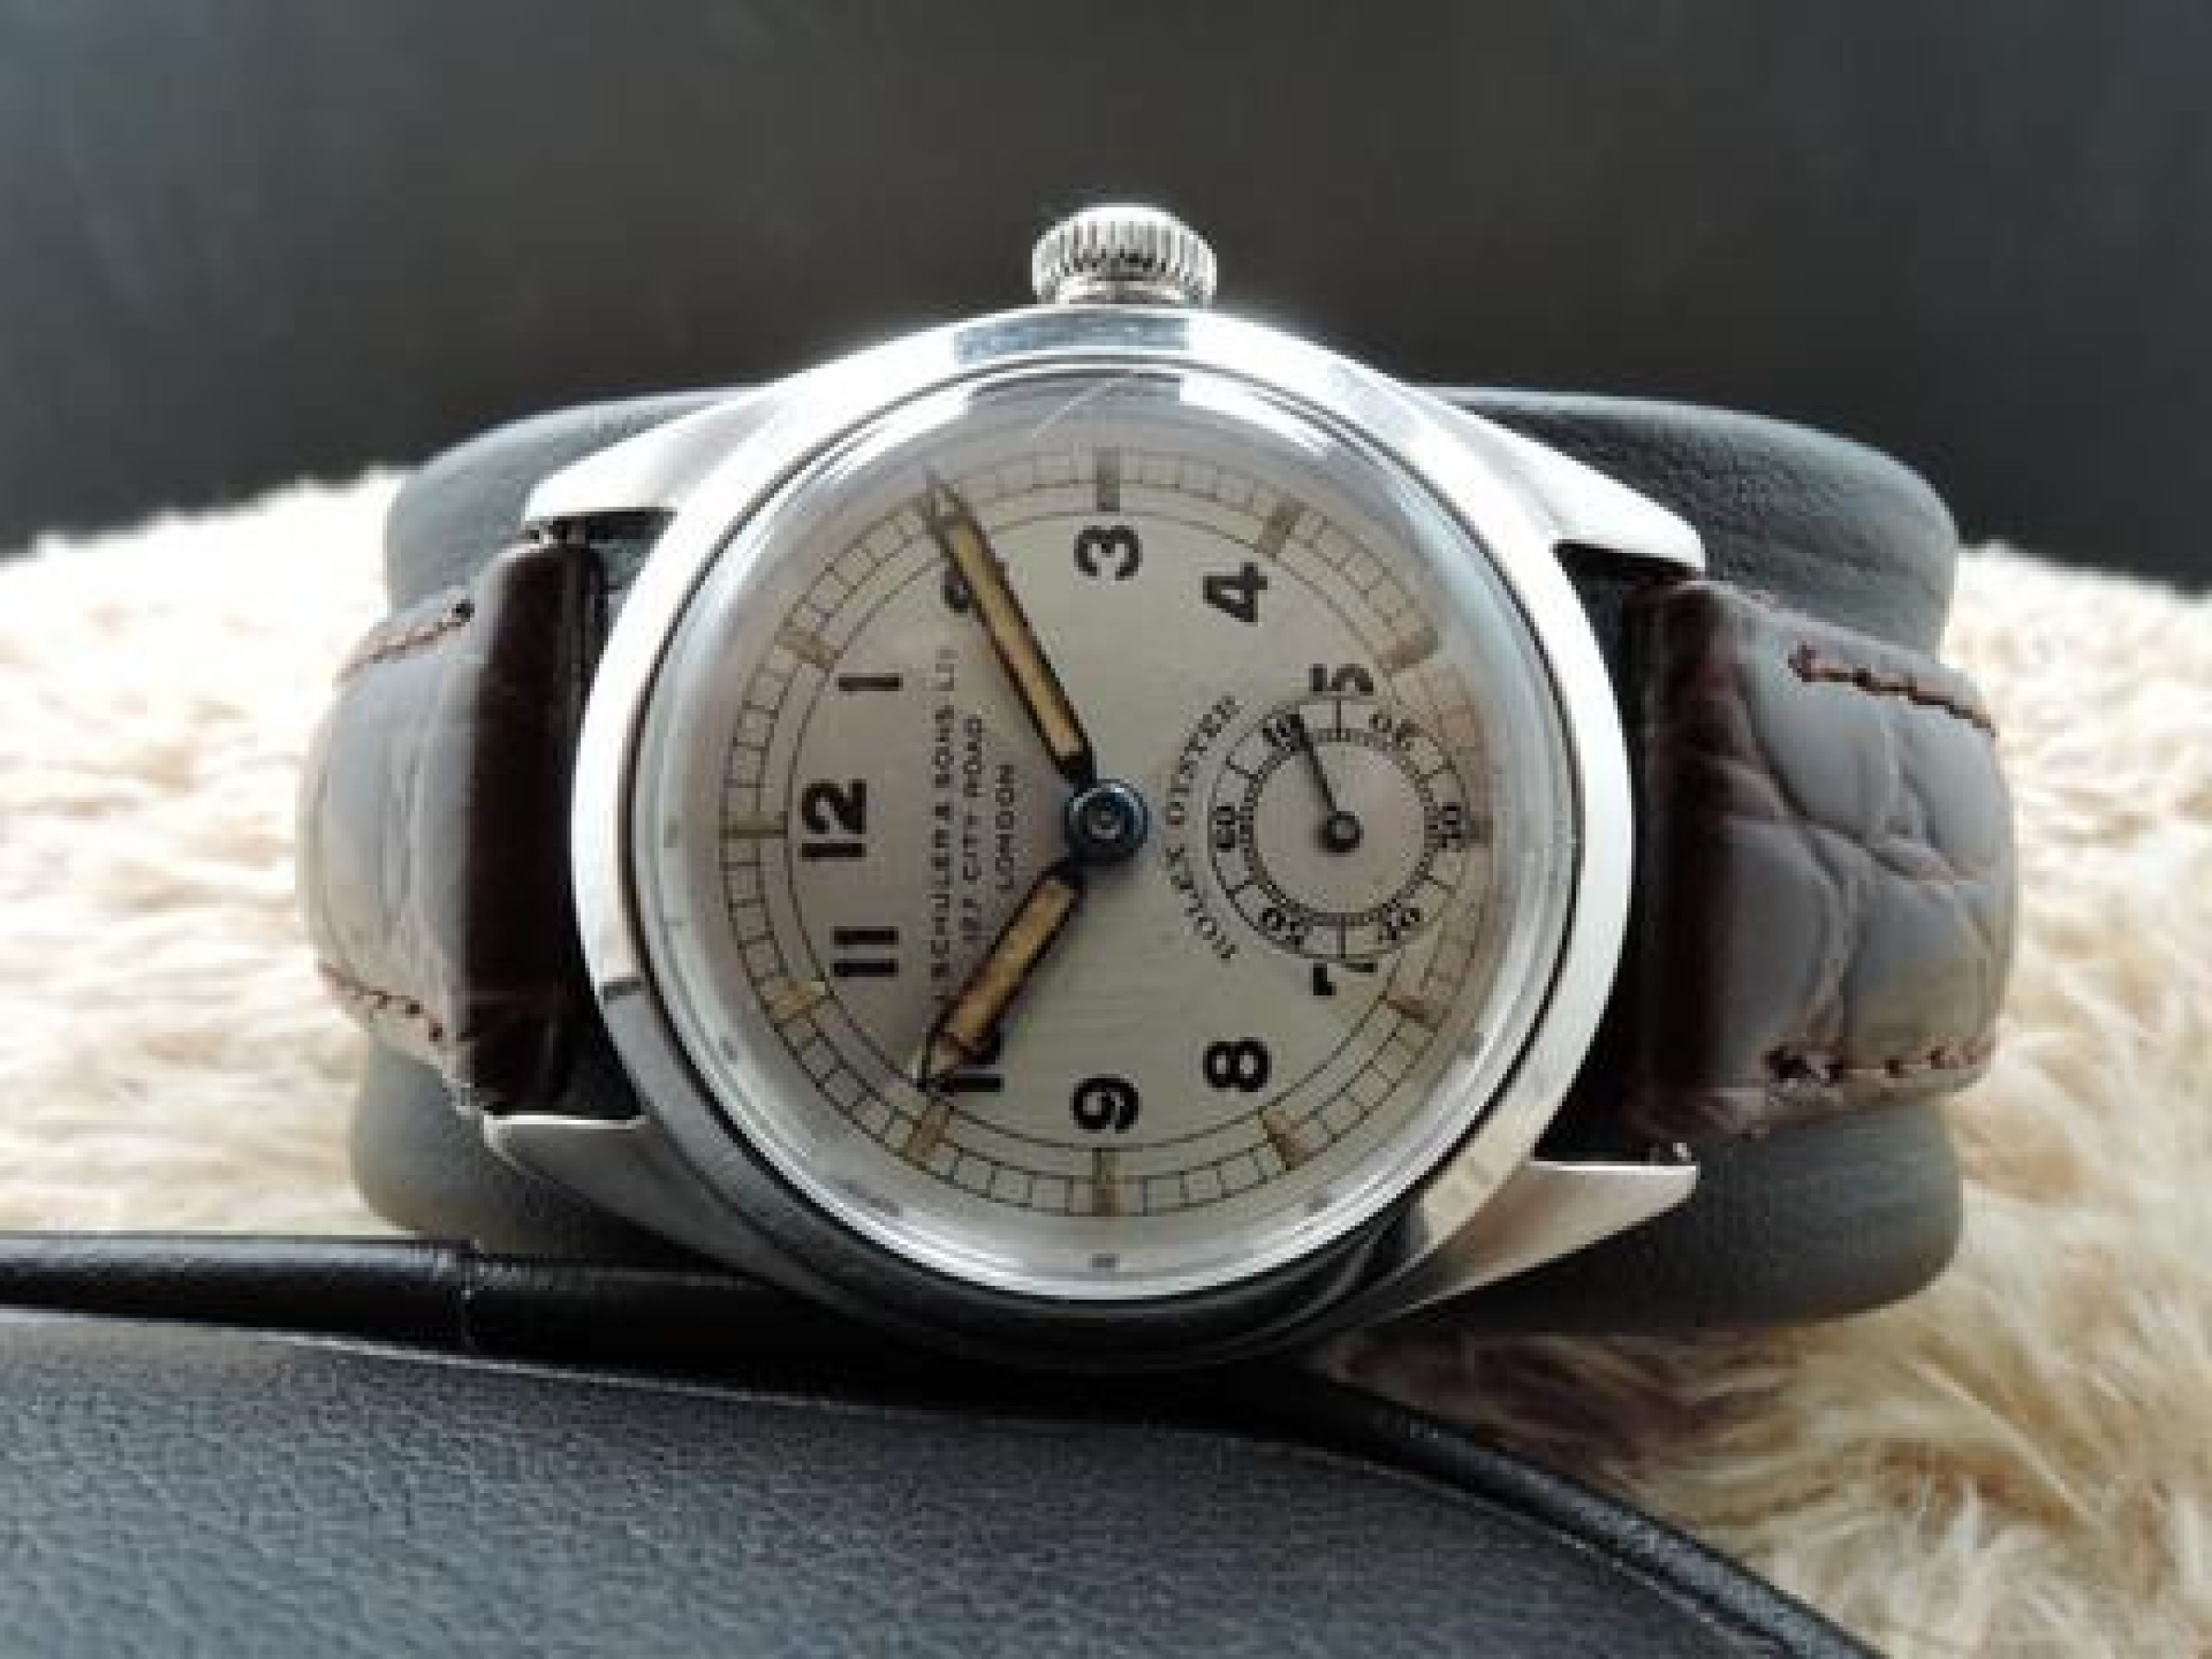 1942 ROLEX 4220 OYSTER WITH ART DECO QUARTERED TWO-TONE DIAL